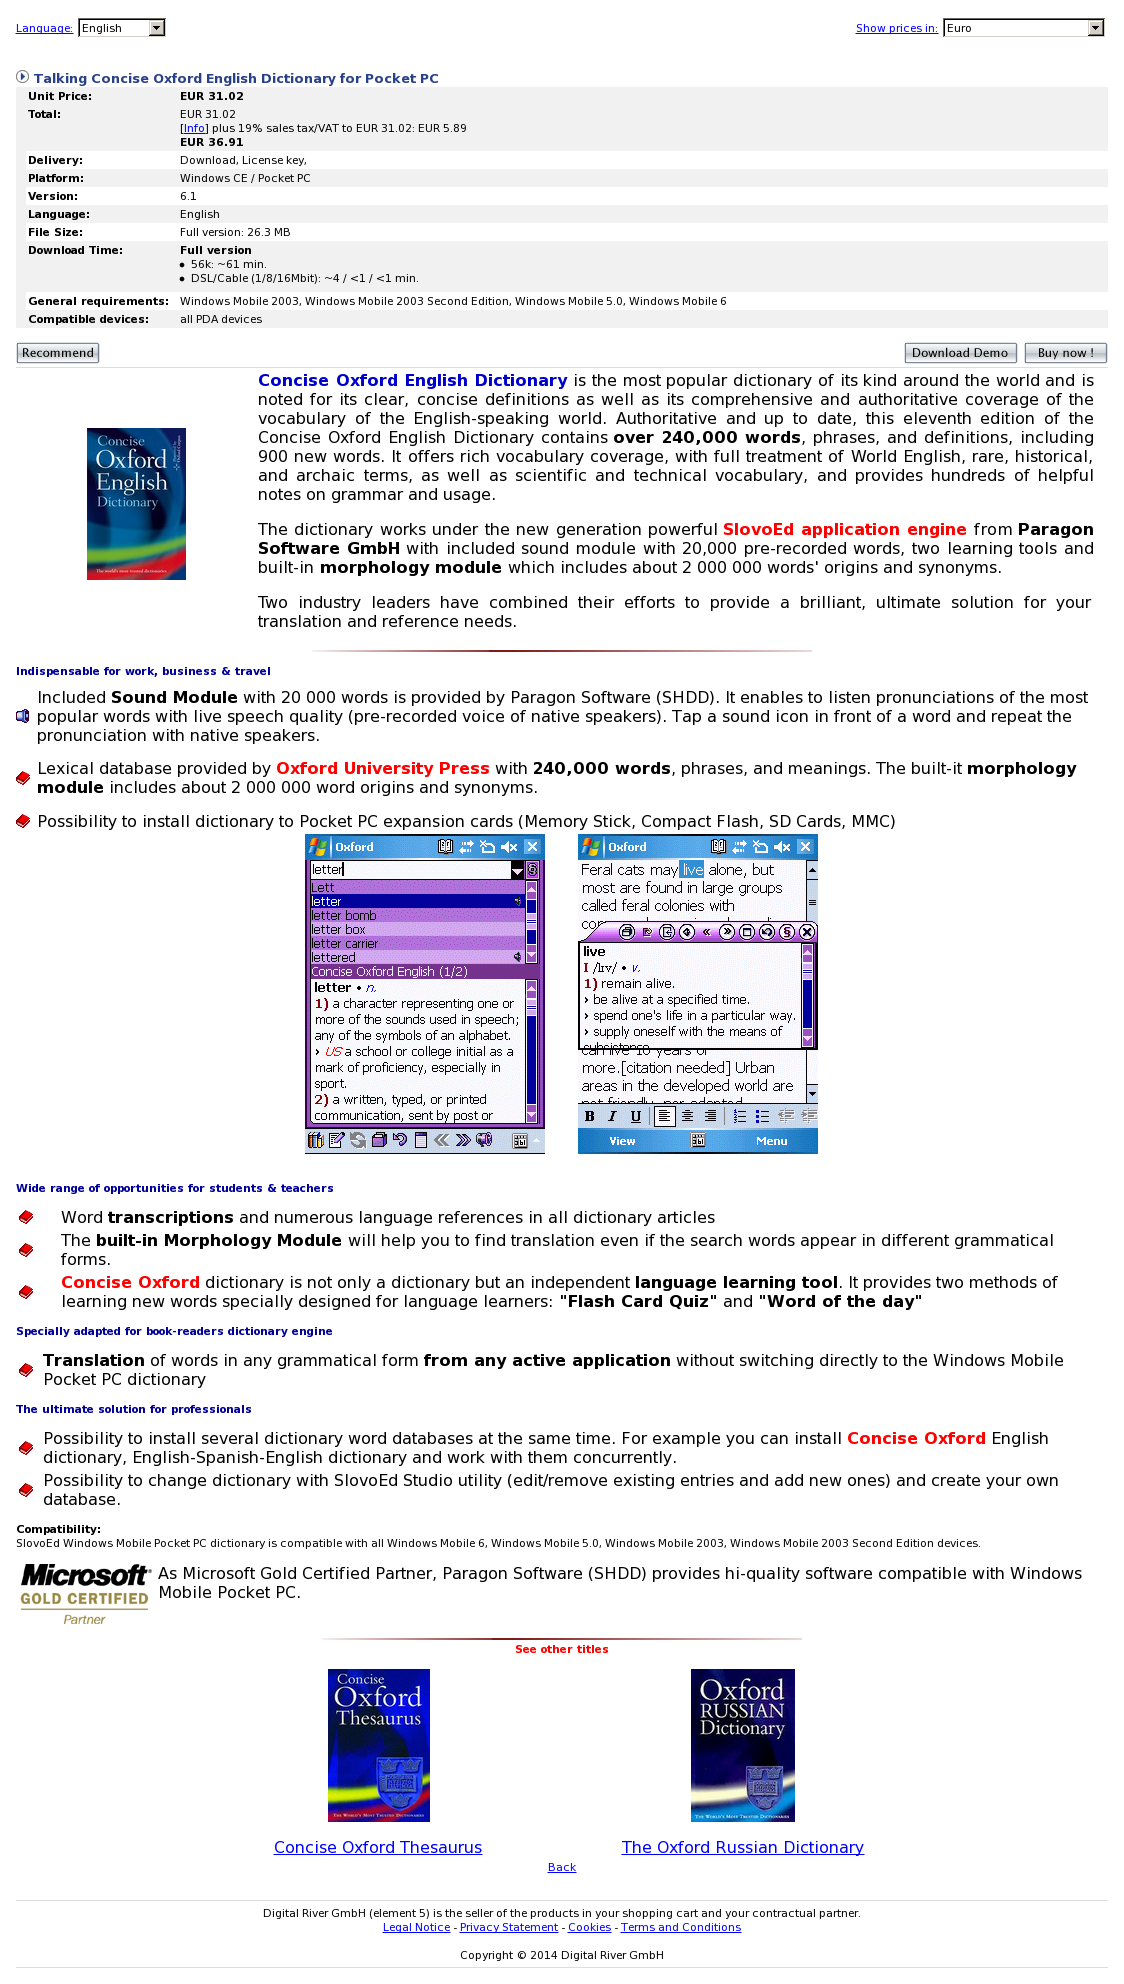 Talking Concise Oxford English Dictionary for Pocket PC